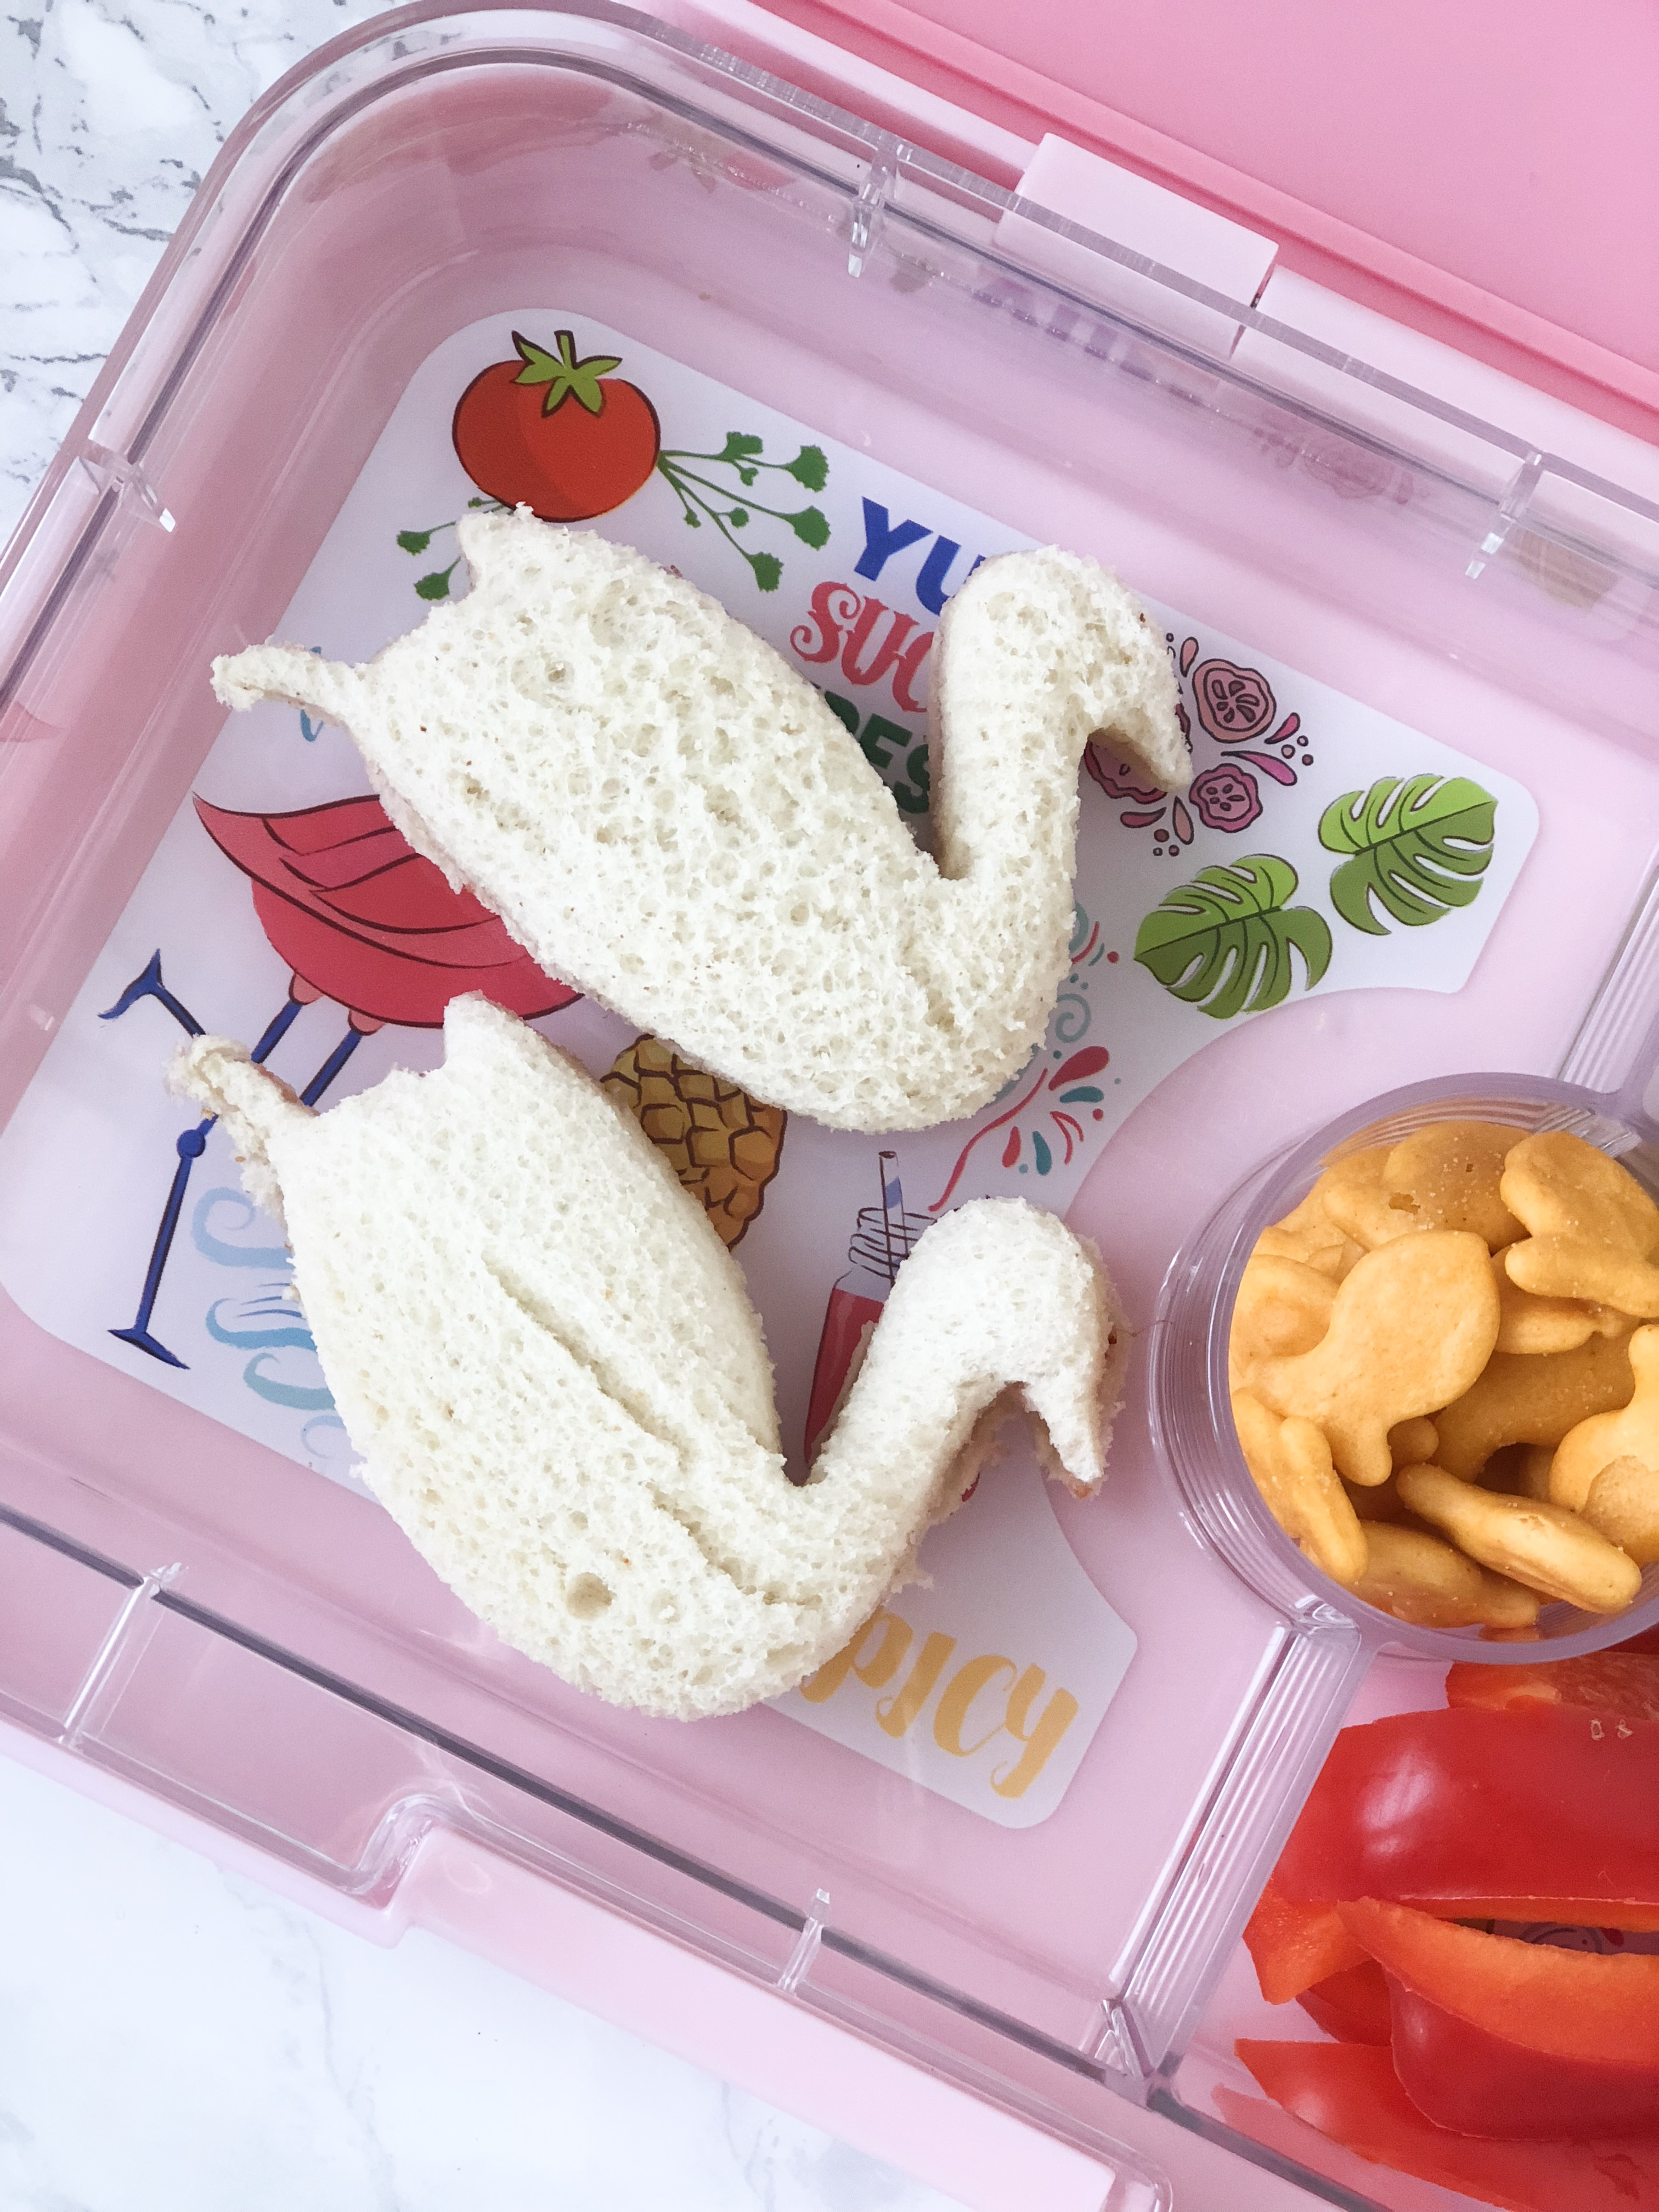 Back to school lunches on livin' life with style